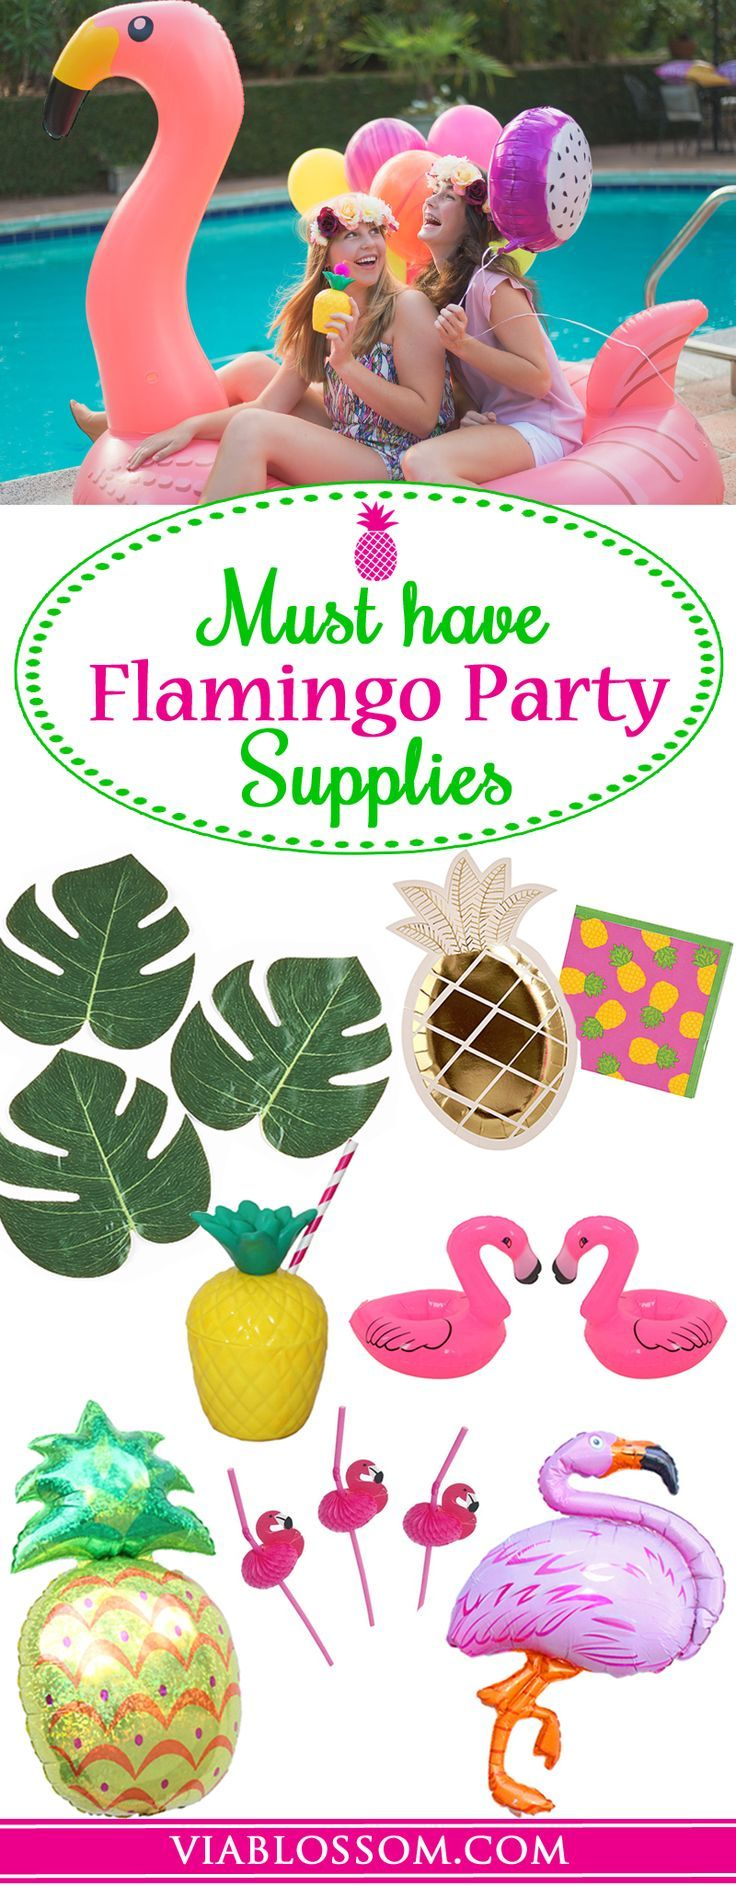 You Don't want to miss our Top Flamingo decorations from fun Summer Party!!!  If you are planning a Flamingo Party, a Pineapple Party, or a MoanaParty, or a Hawaiian Luau, then you've come to the right place!!